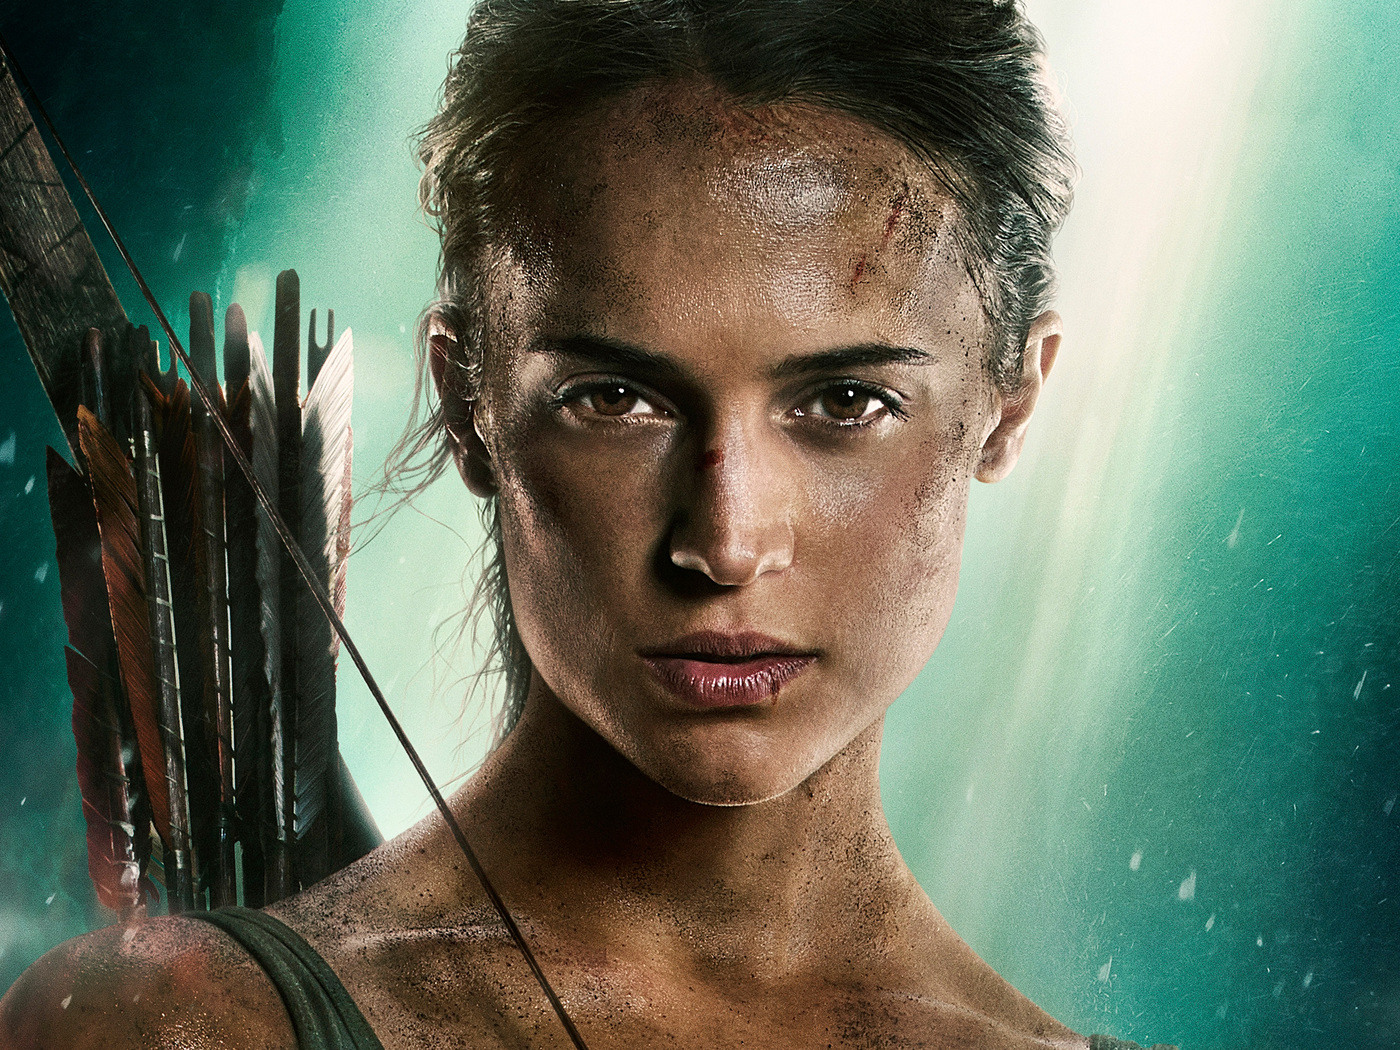 alicia-vikander-as-lara-croft-in-tomb-raider-2018-movie-4k-wq.jpg